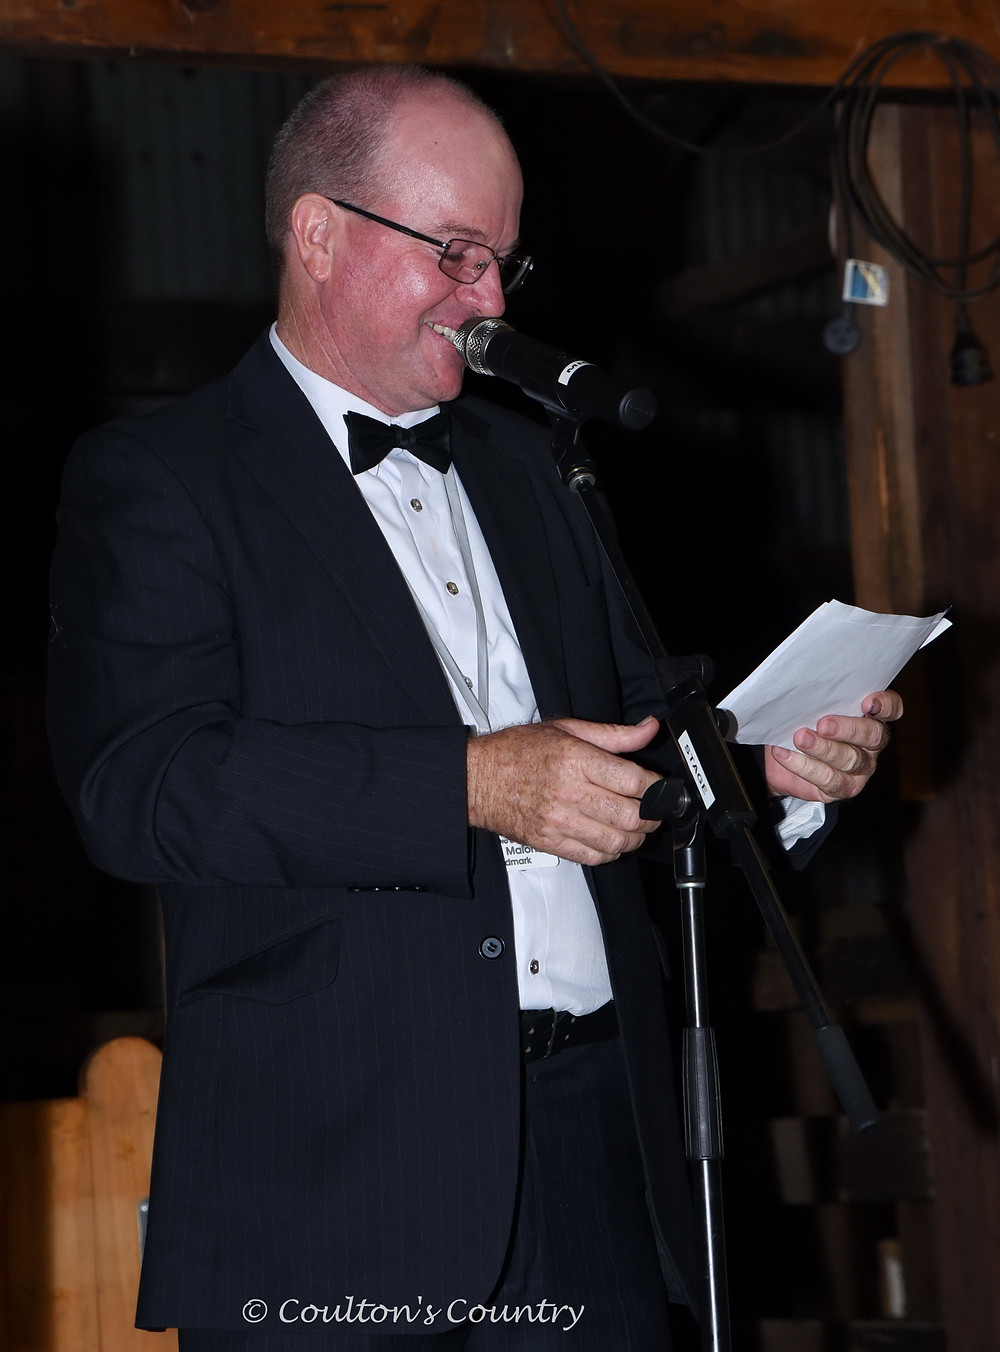 The MC for the evening was John Malone from Landmark Dalby.